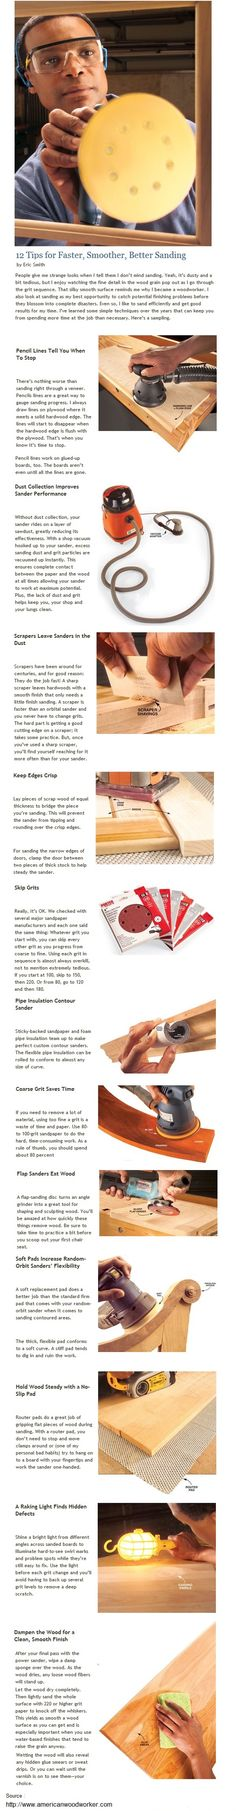 12 Tips for Faster, Smoother, Better Sanding ( by Americanwoodworker.com )